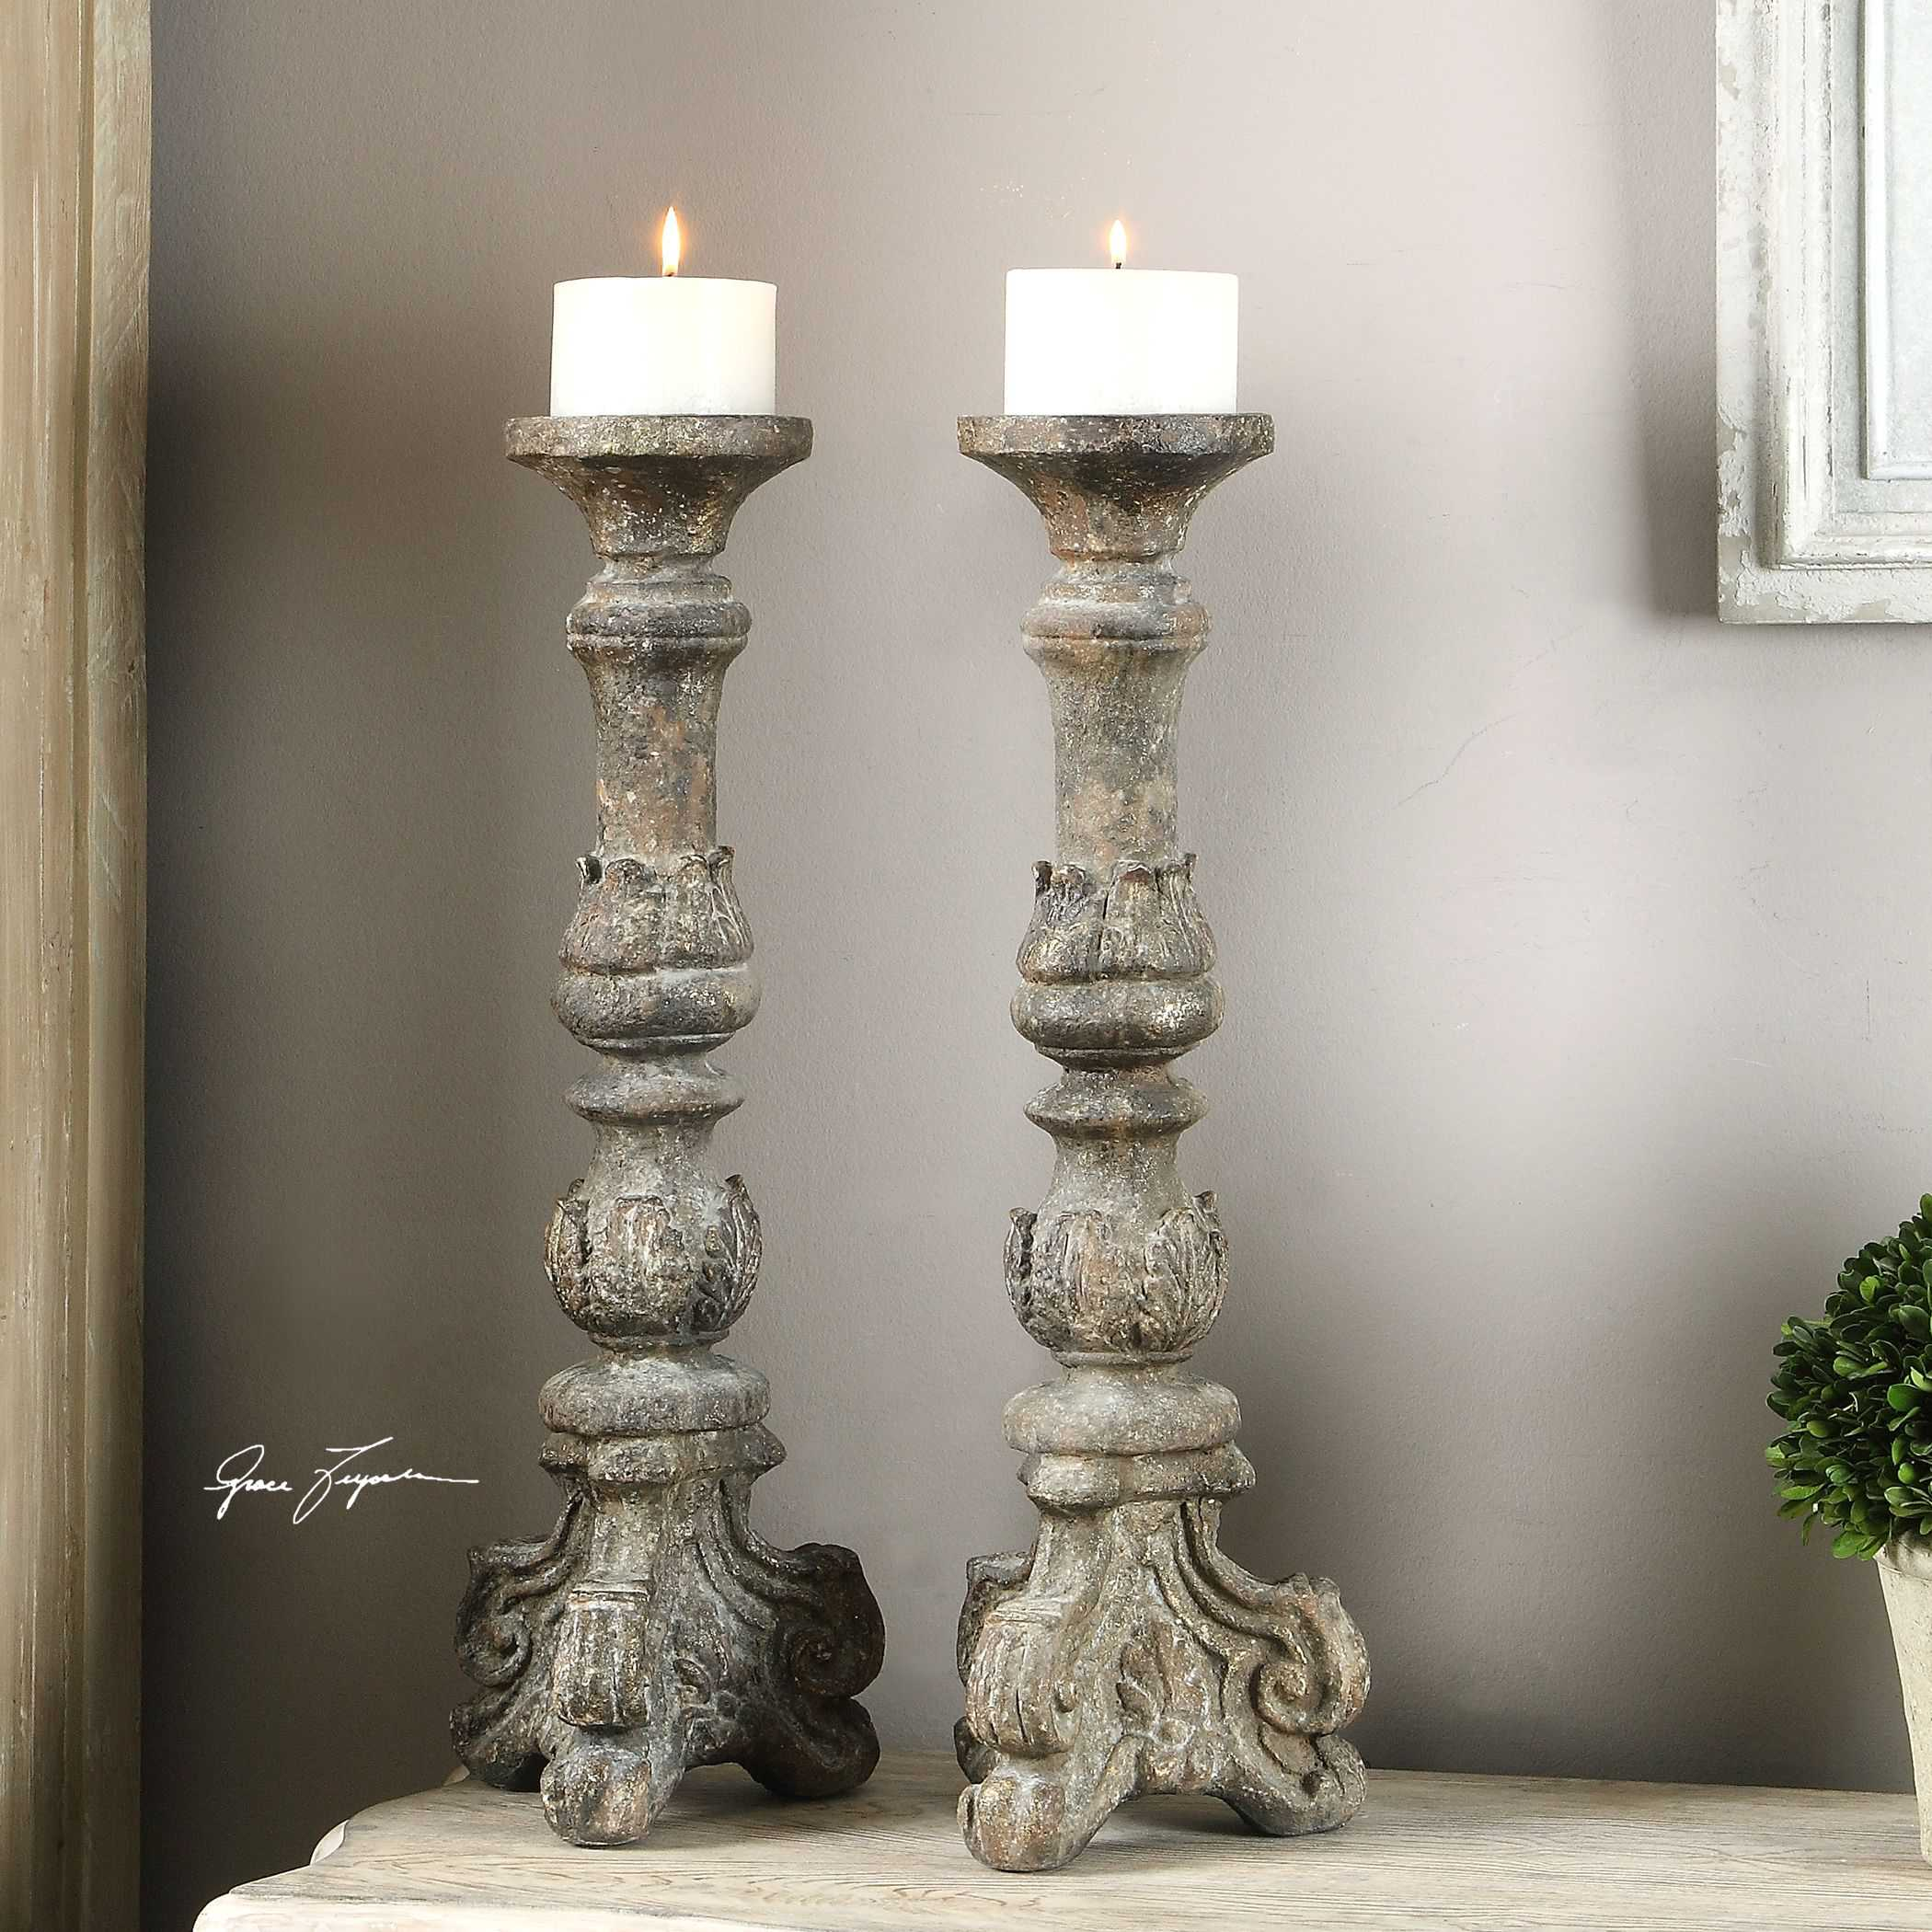 Shop for candle holders & centerpieces at grounwhijwgg.cf Browse our unique selection of tealight & votive candle holders, pillar candle holders & more at Pier 1 Imports.